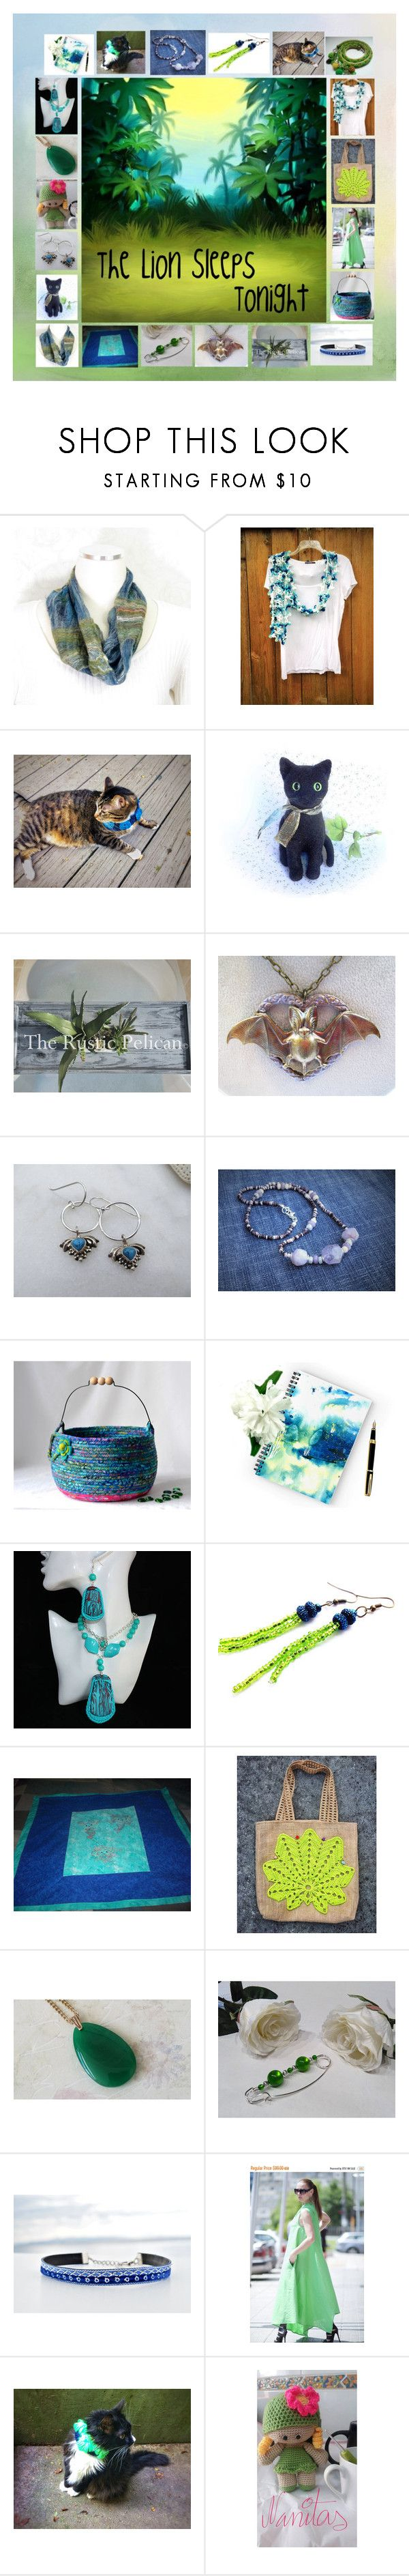 """The Lion Sleeps Tonight: Birthday Gift Ideas"" by paulinemcewen ❤ liked on Polyvore featuring rustic, vintage and country"